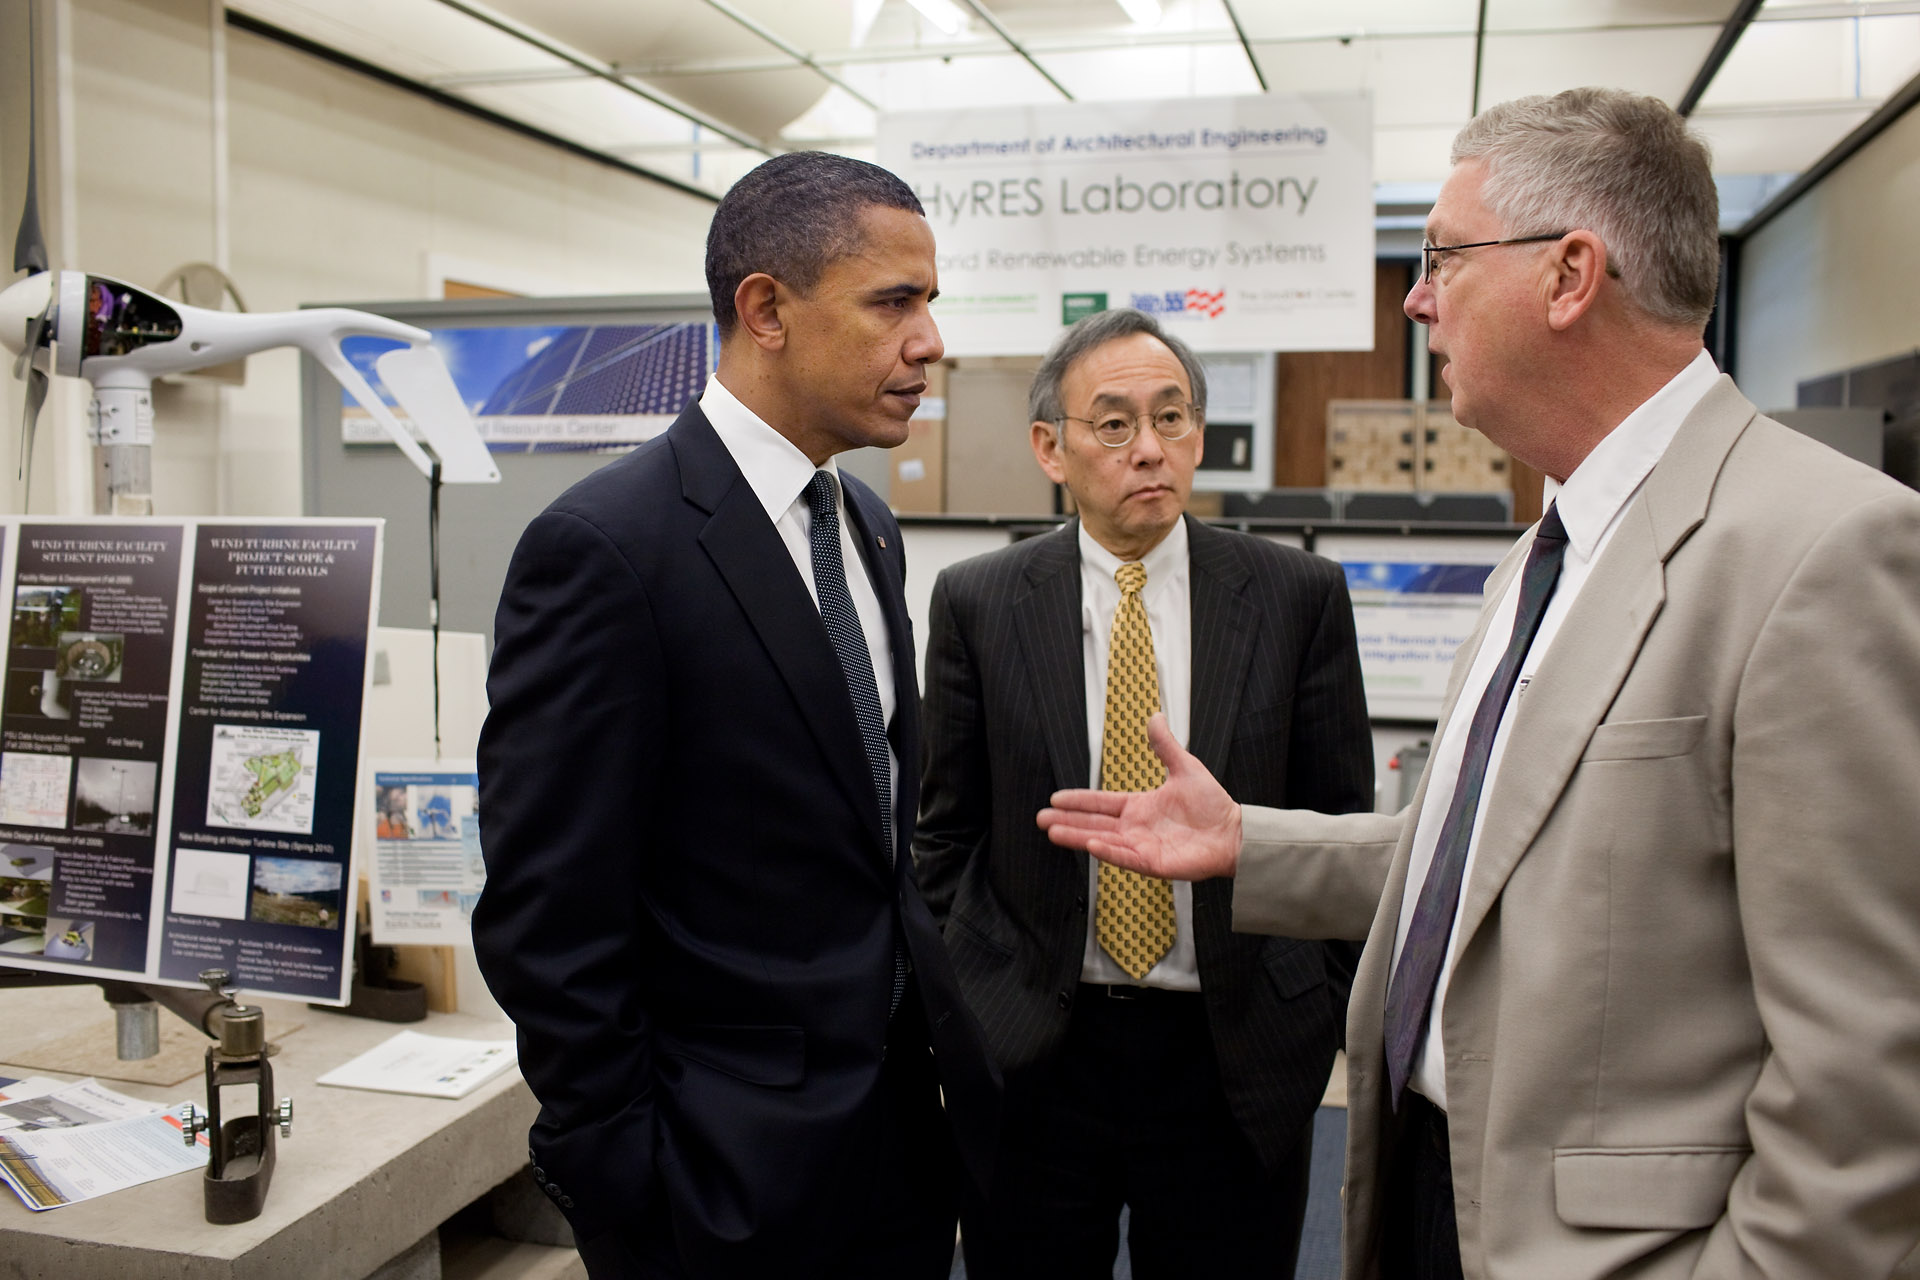 President Obama and Secretary Chu Tour Innovation Hub